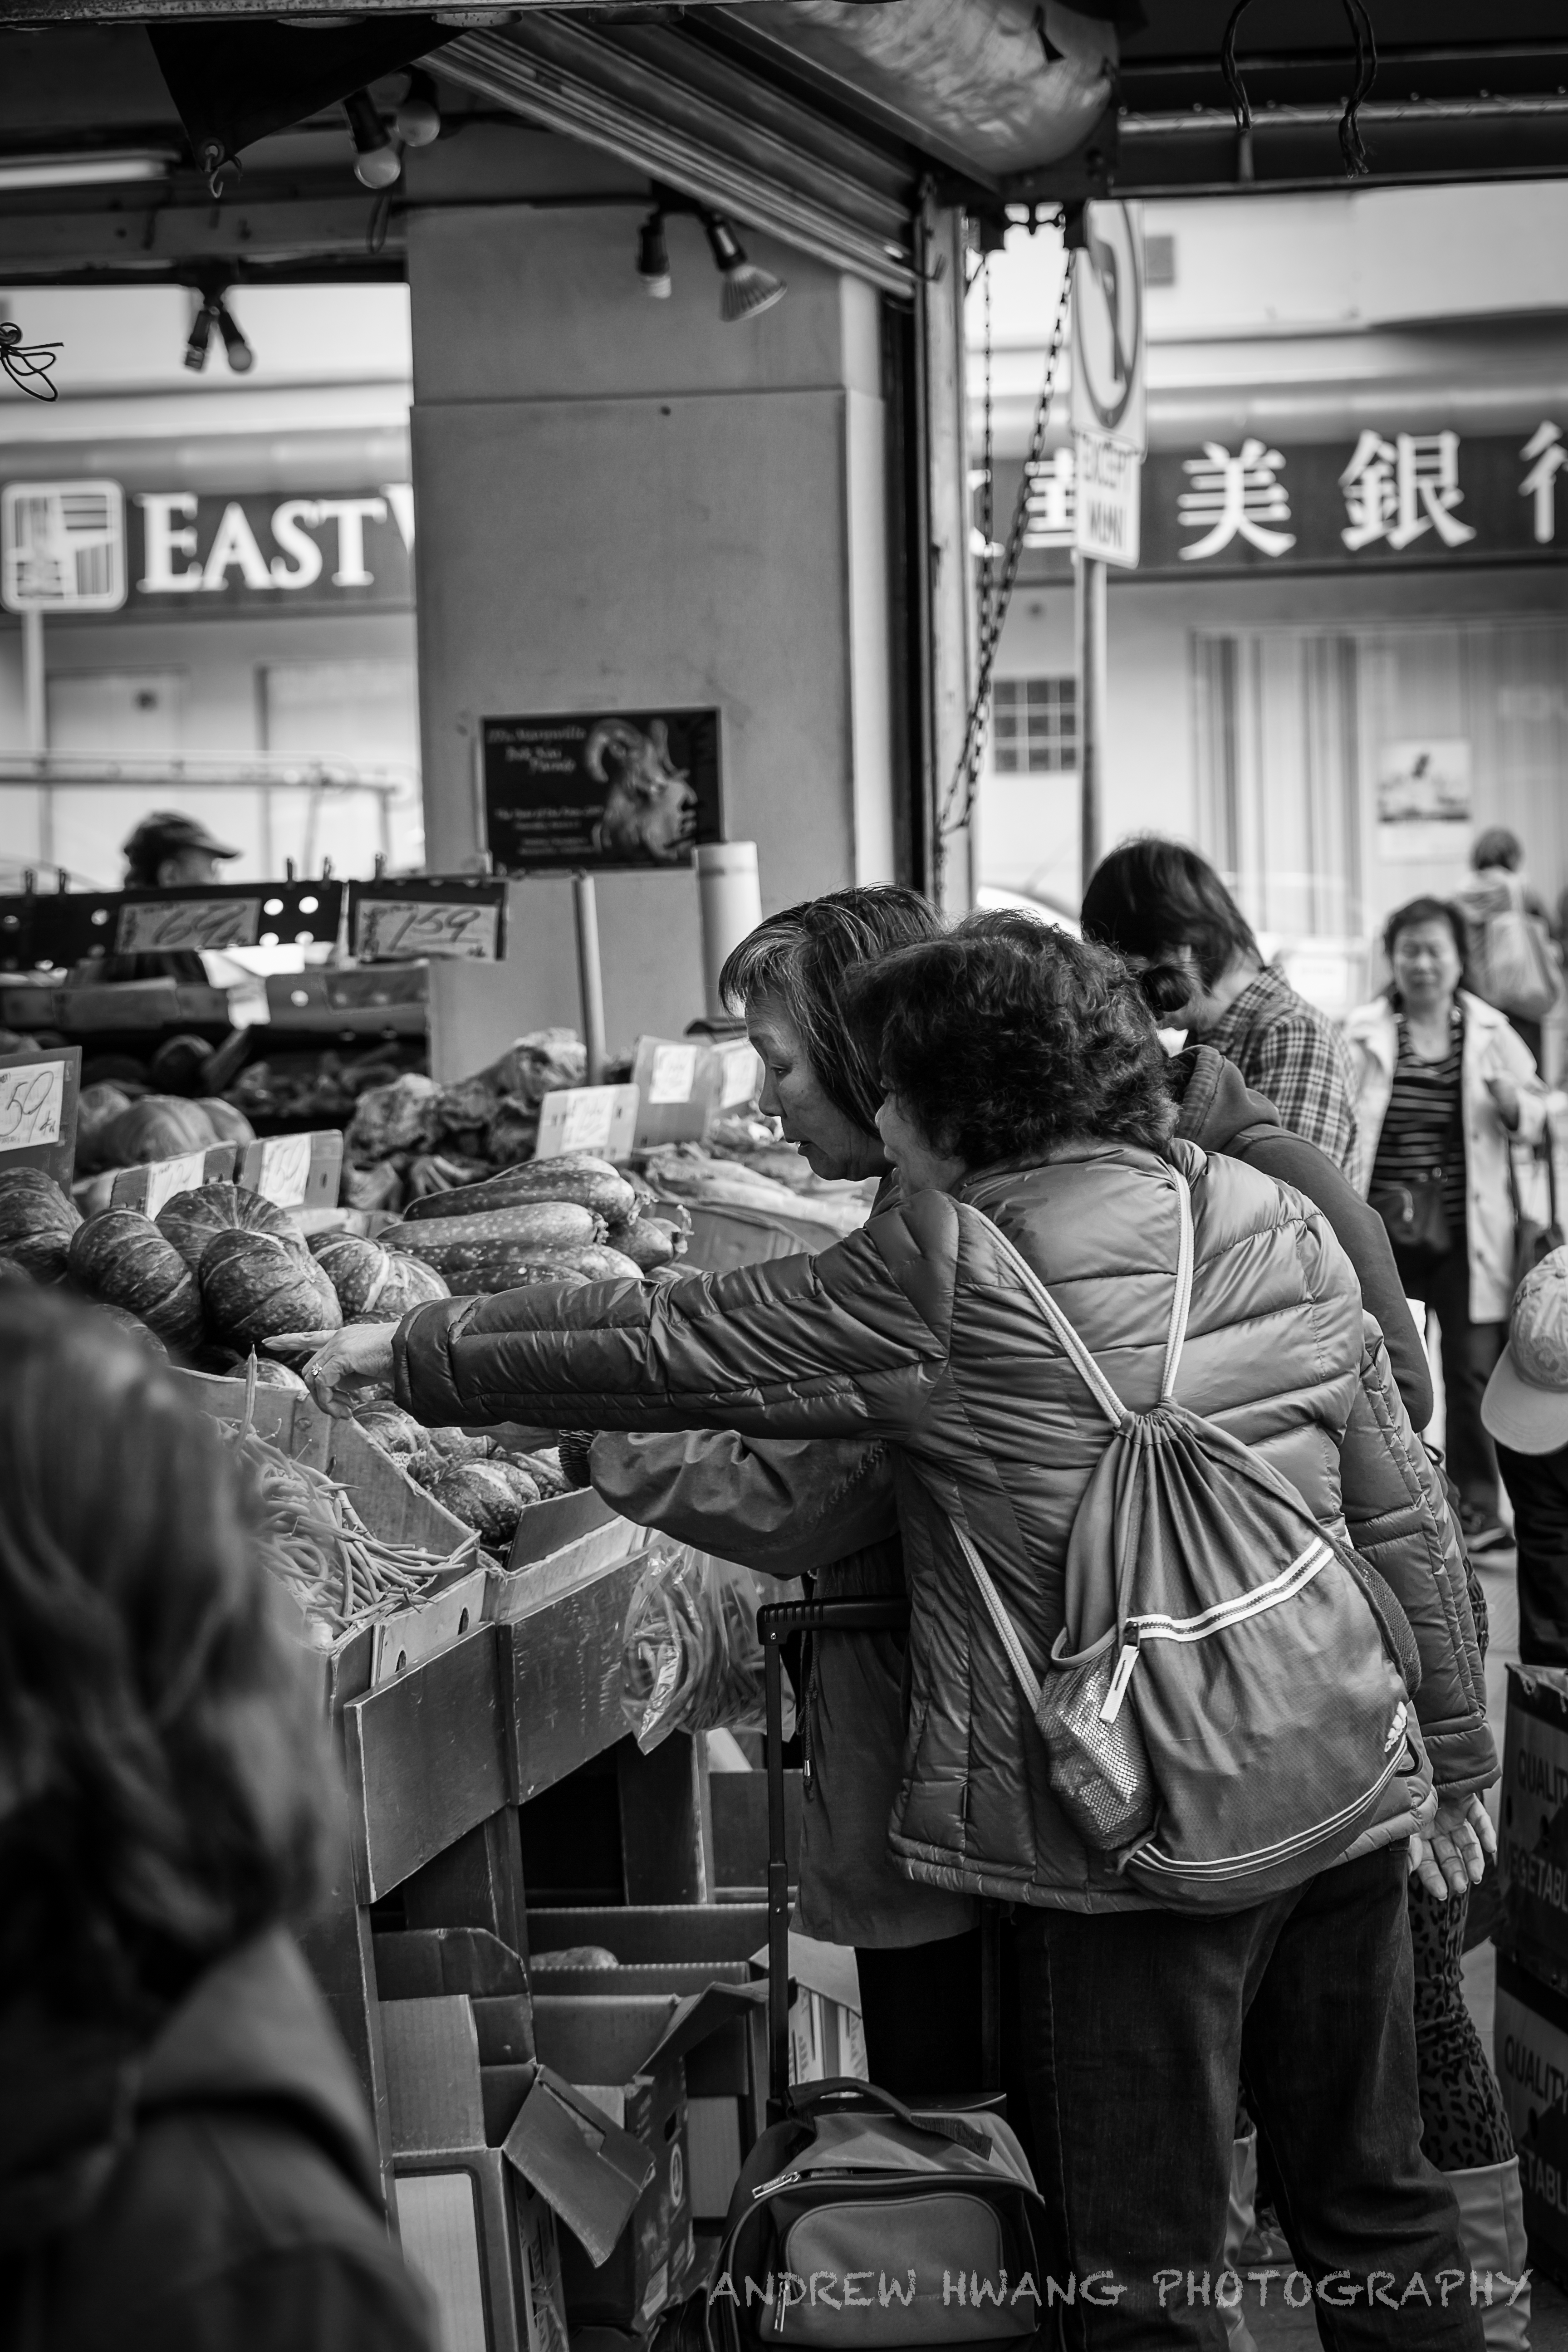 People of Chinatown B&W